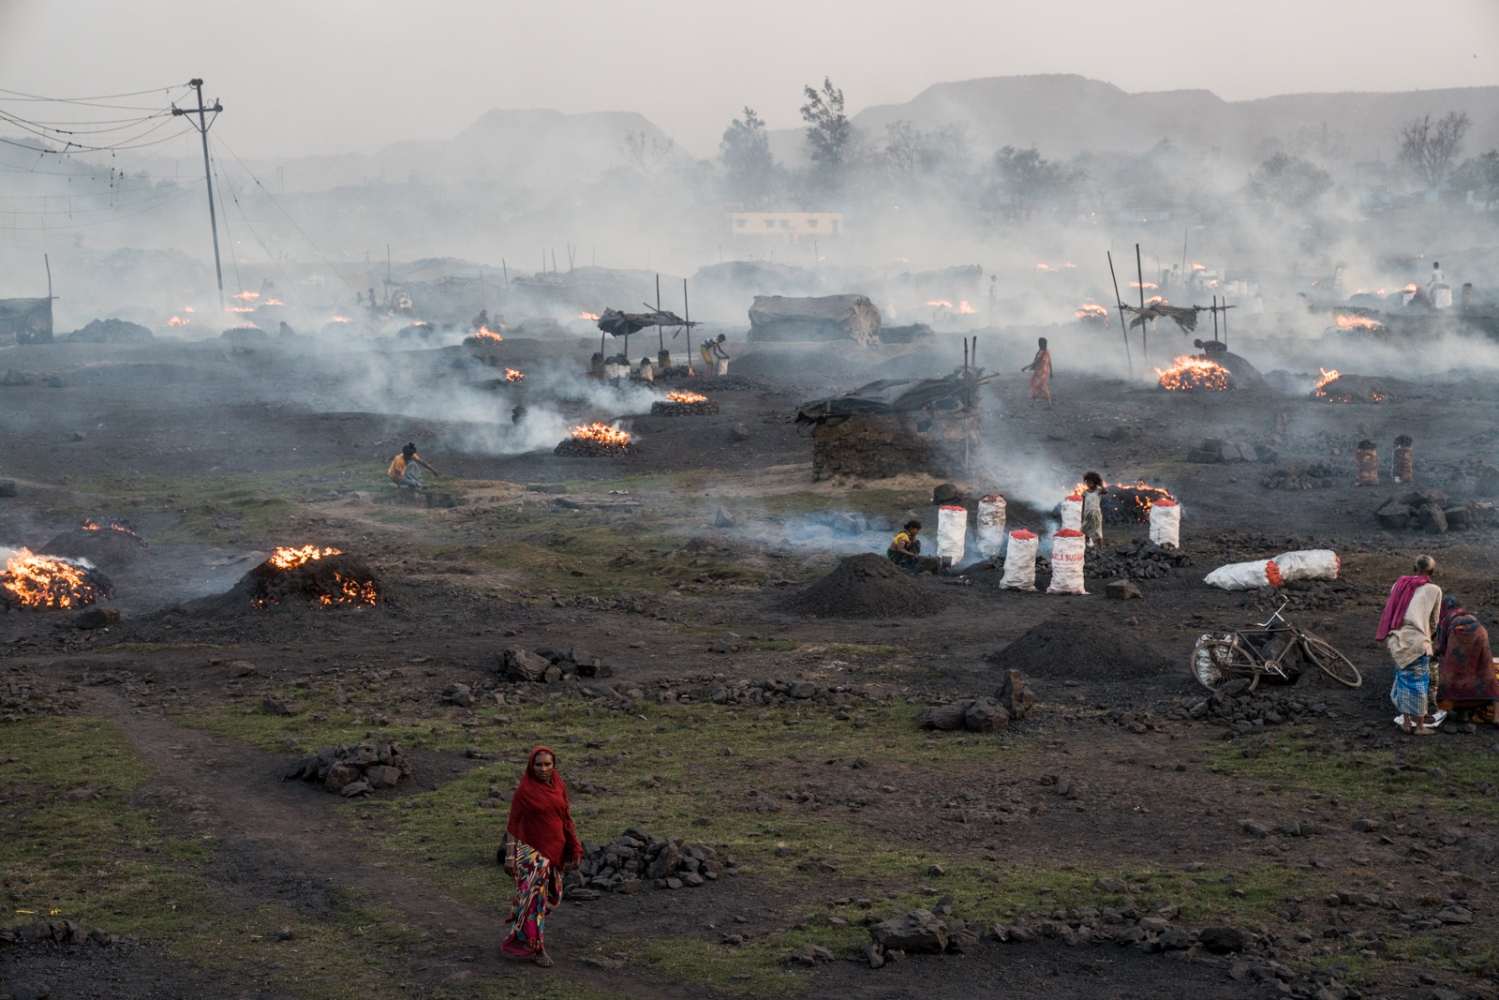 An area where scavenged coal is brought to be burnt and produce charcoal to be sold on the black market. A thick cloud of particulate and gaseous pollution blankets the area and contributes to and exacerbates already dangerous air quality.